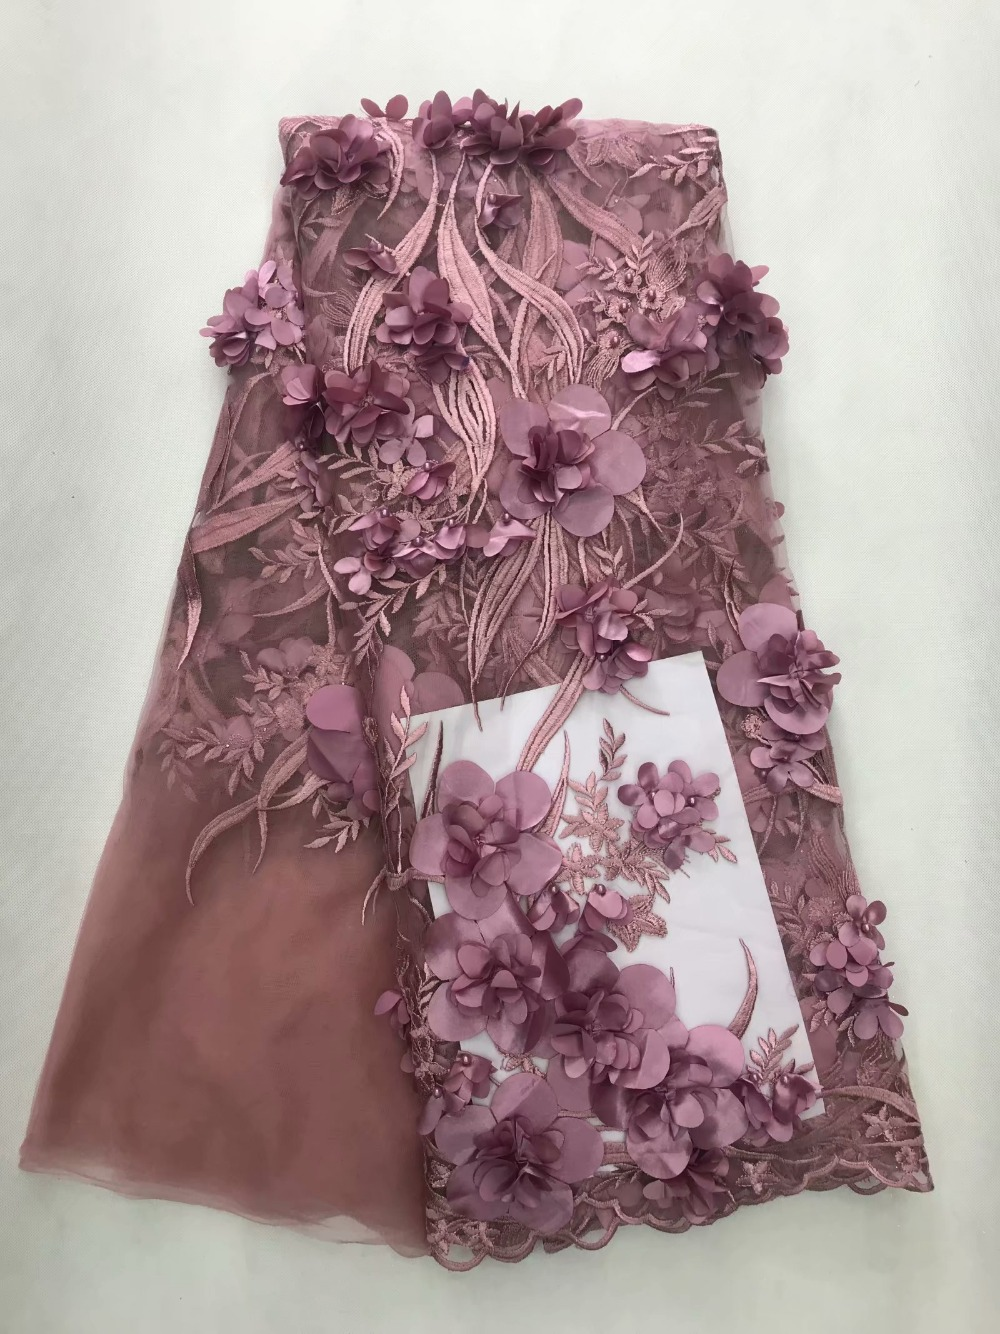 Hot pink pani Africa fine lace fabric high quality French pink applique 3D beaded tulle lace